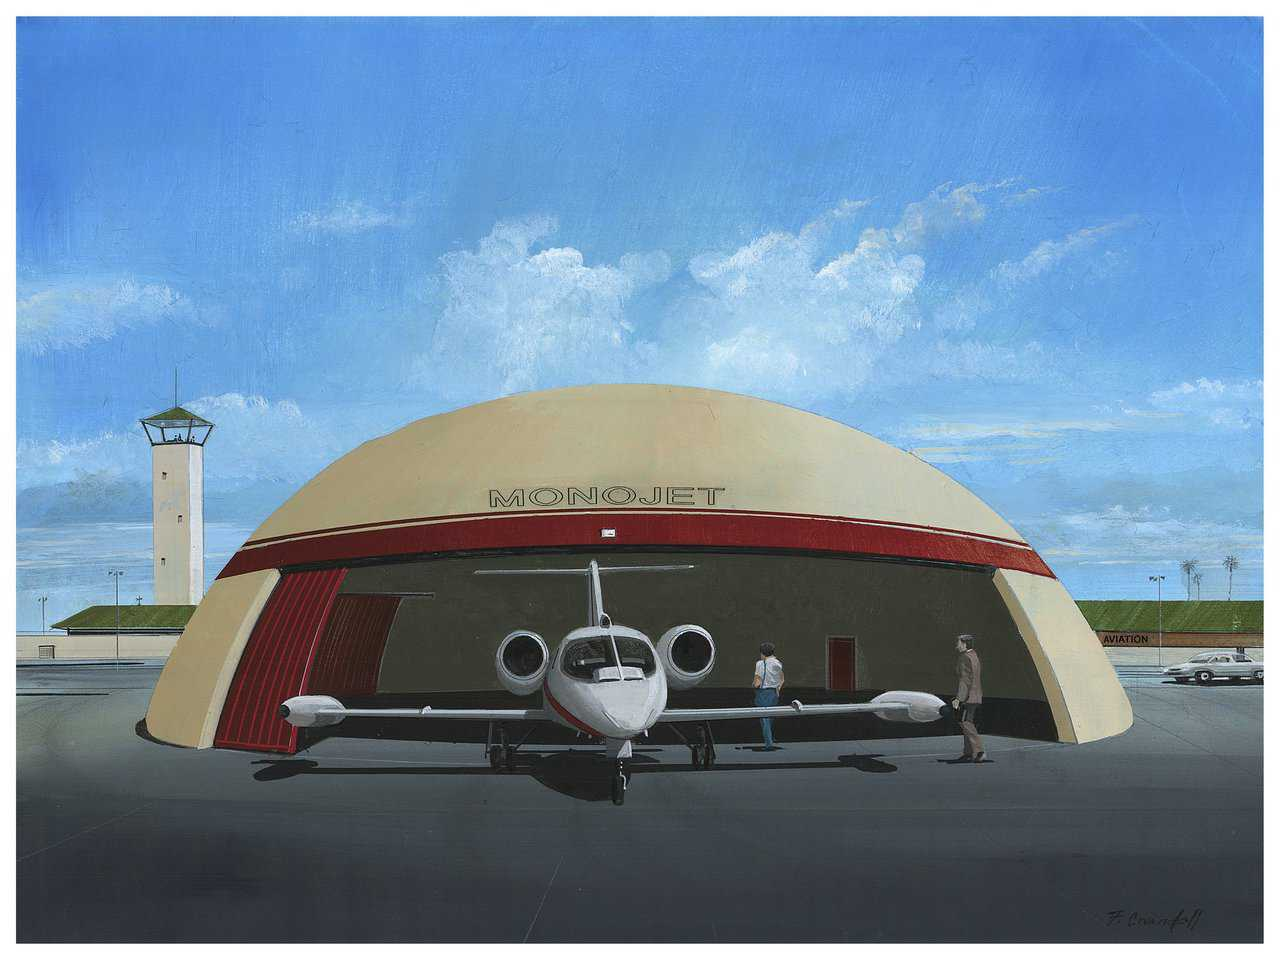 Rendering of a small Monolithic Dome hangar with lateral door used for a private jet. Millions of dollars are spent on private jets and corporate air travel yet these planes are often stored in hangars incapable of protecting the planes during violent weather. A Monolithic Dome hangar is a tiny price to pay to protect a multi-million dollar investment.